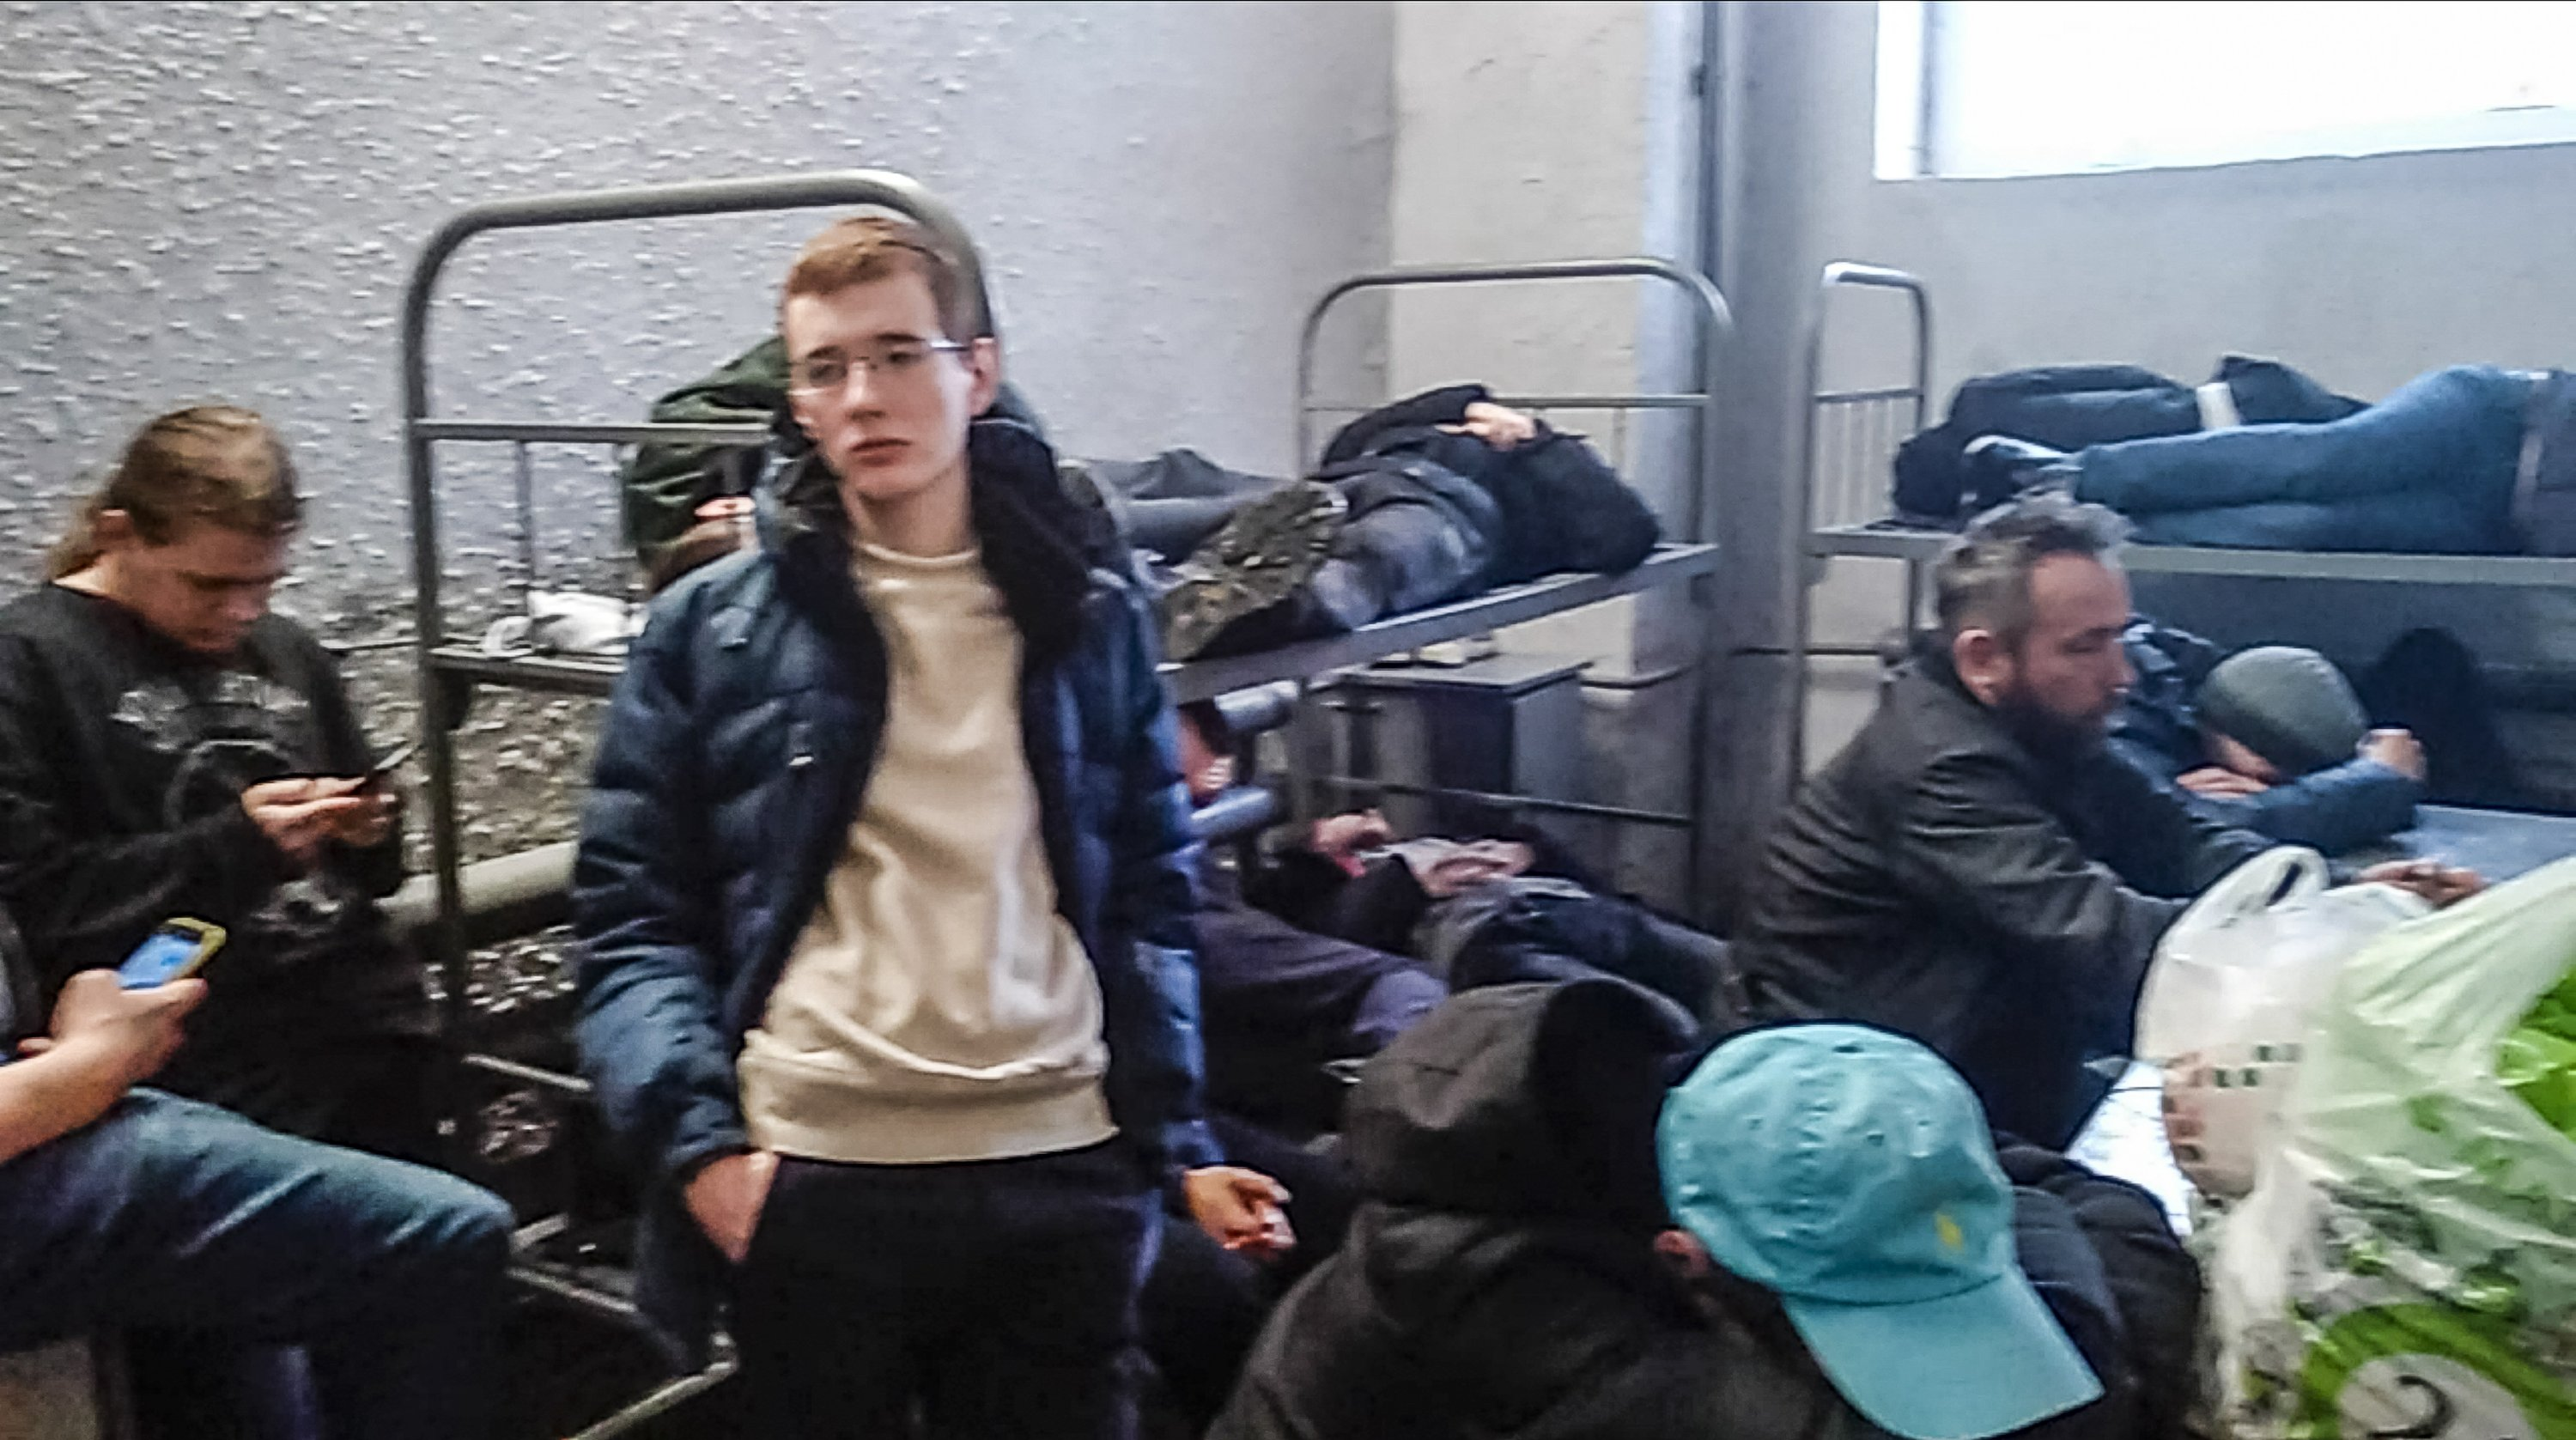 Moscow's jails overwhelmed with detained Navalny protesters – The Associated Press